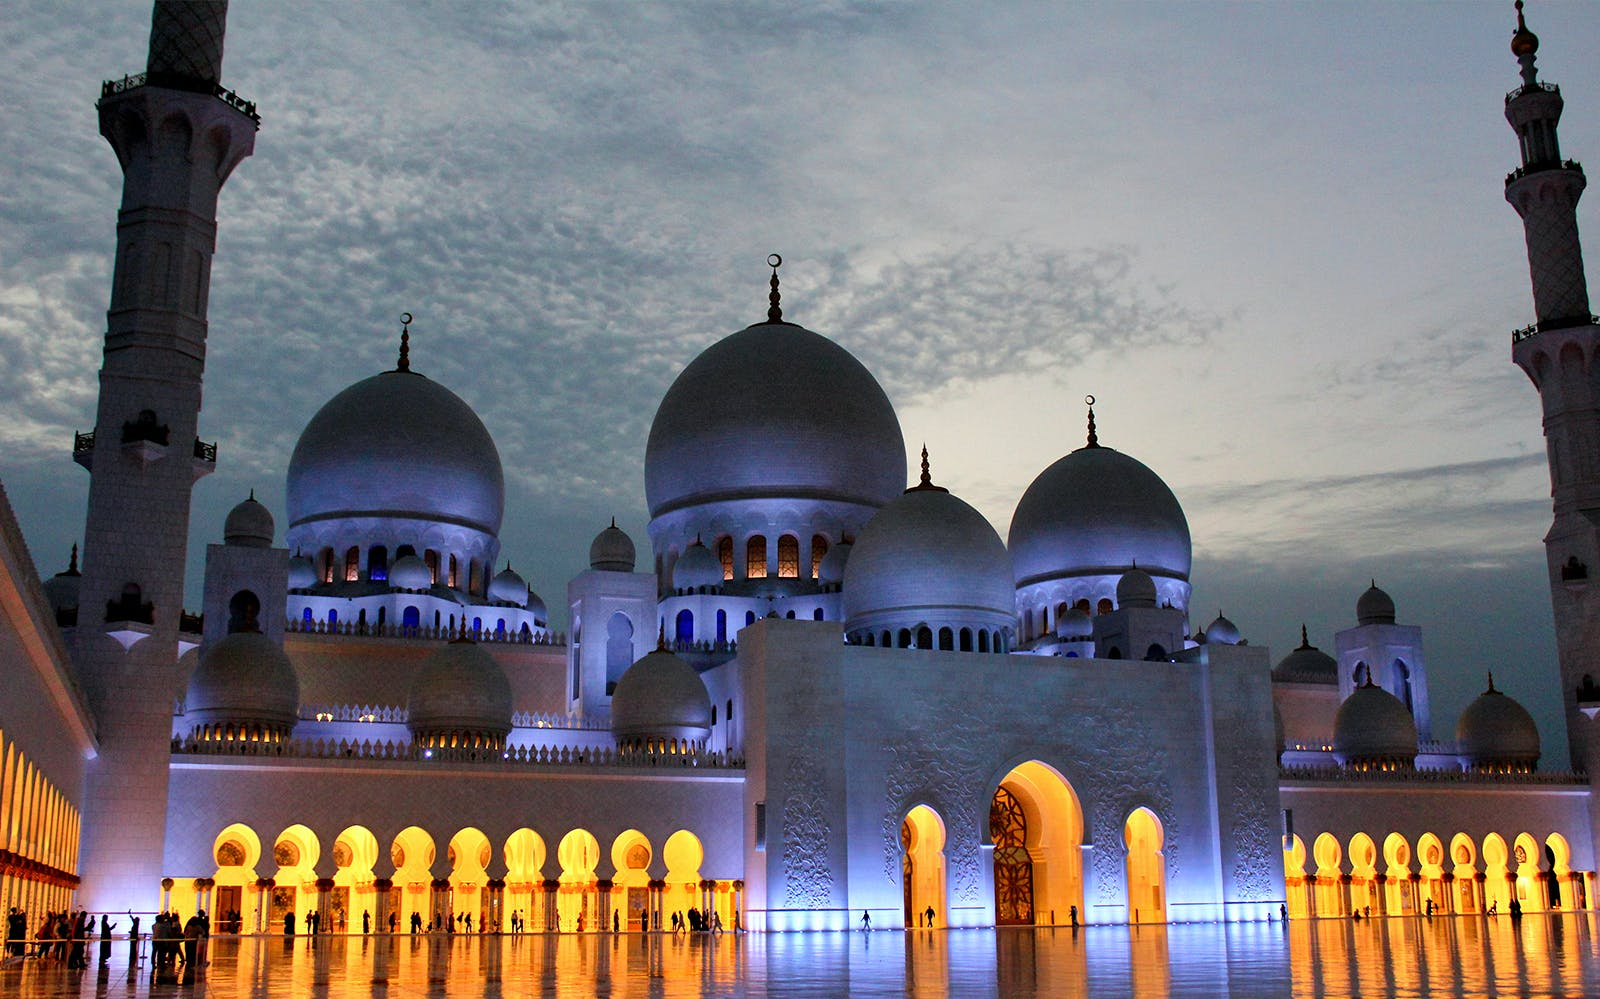 Sheikh Zayed Mosque and Abu Dhabi City Guided Tour